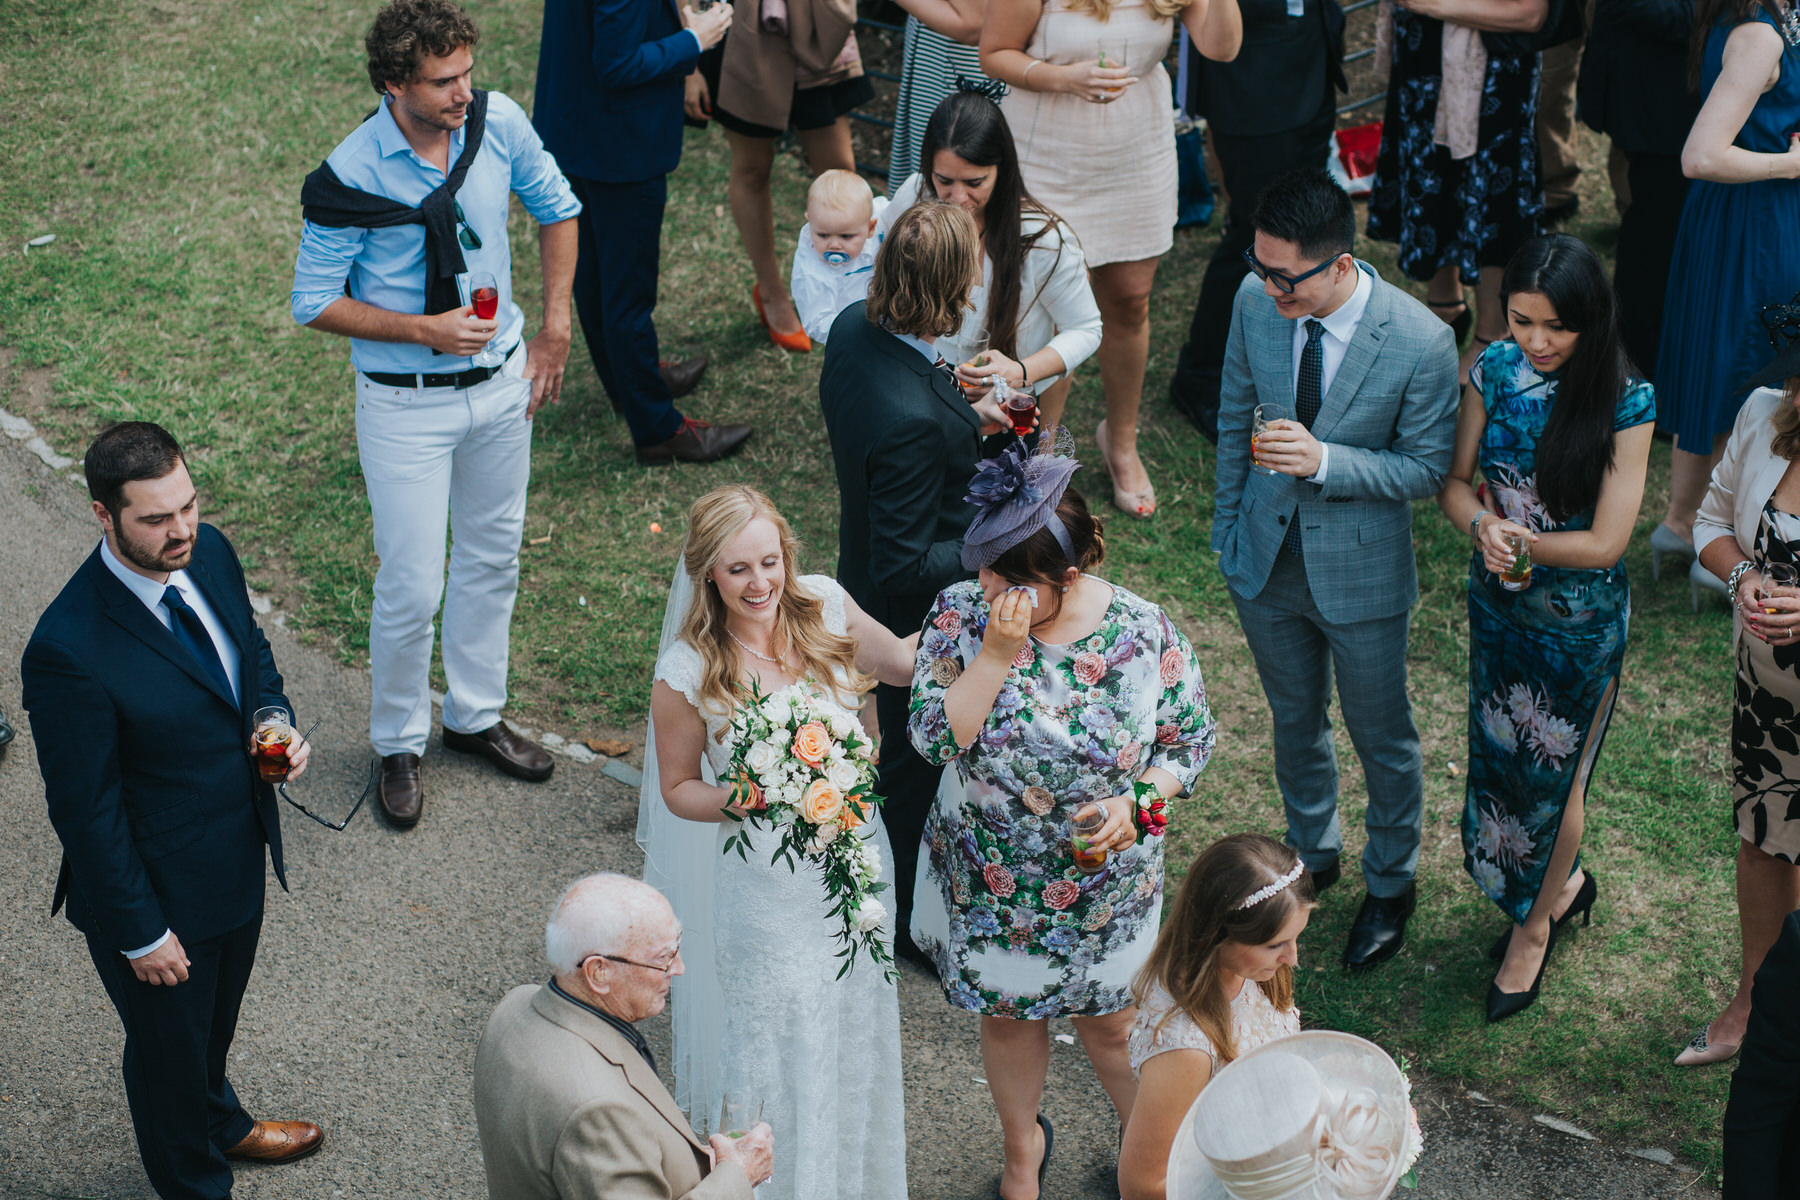 115-Pembroke Lodge South Lawn wedding drinks reception.jpg